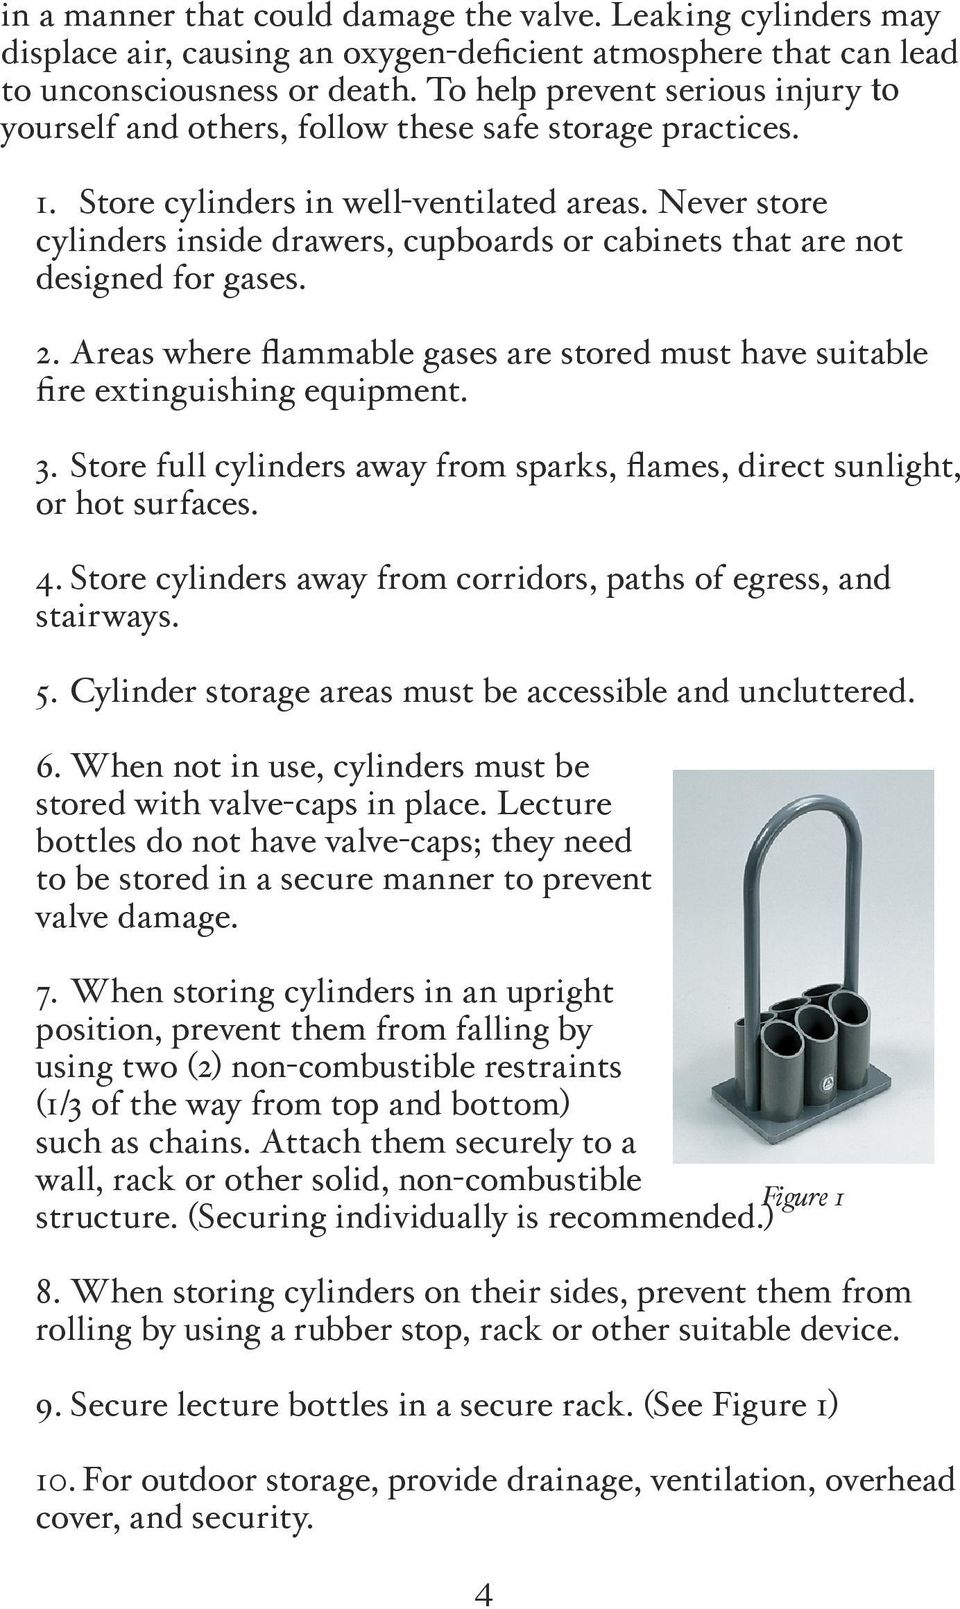 Never store cylinders inside drawers, cupboards or cabinets that are not designed for gases. 2. Areas where flammable gases are stored must have suitable fire extinguishing equipment. 3.